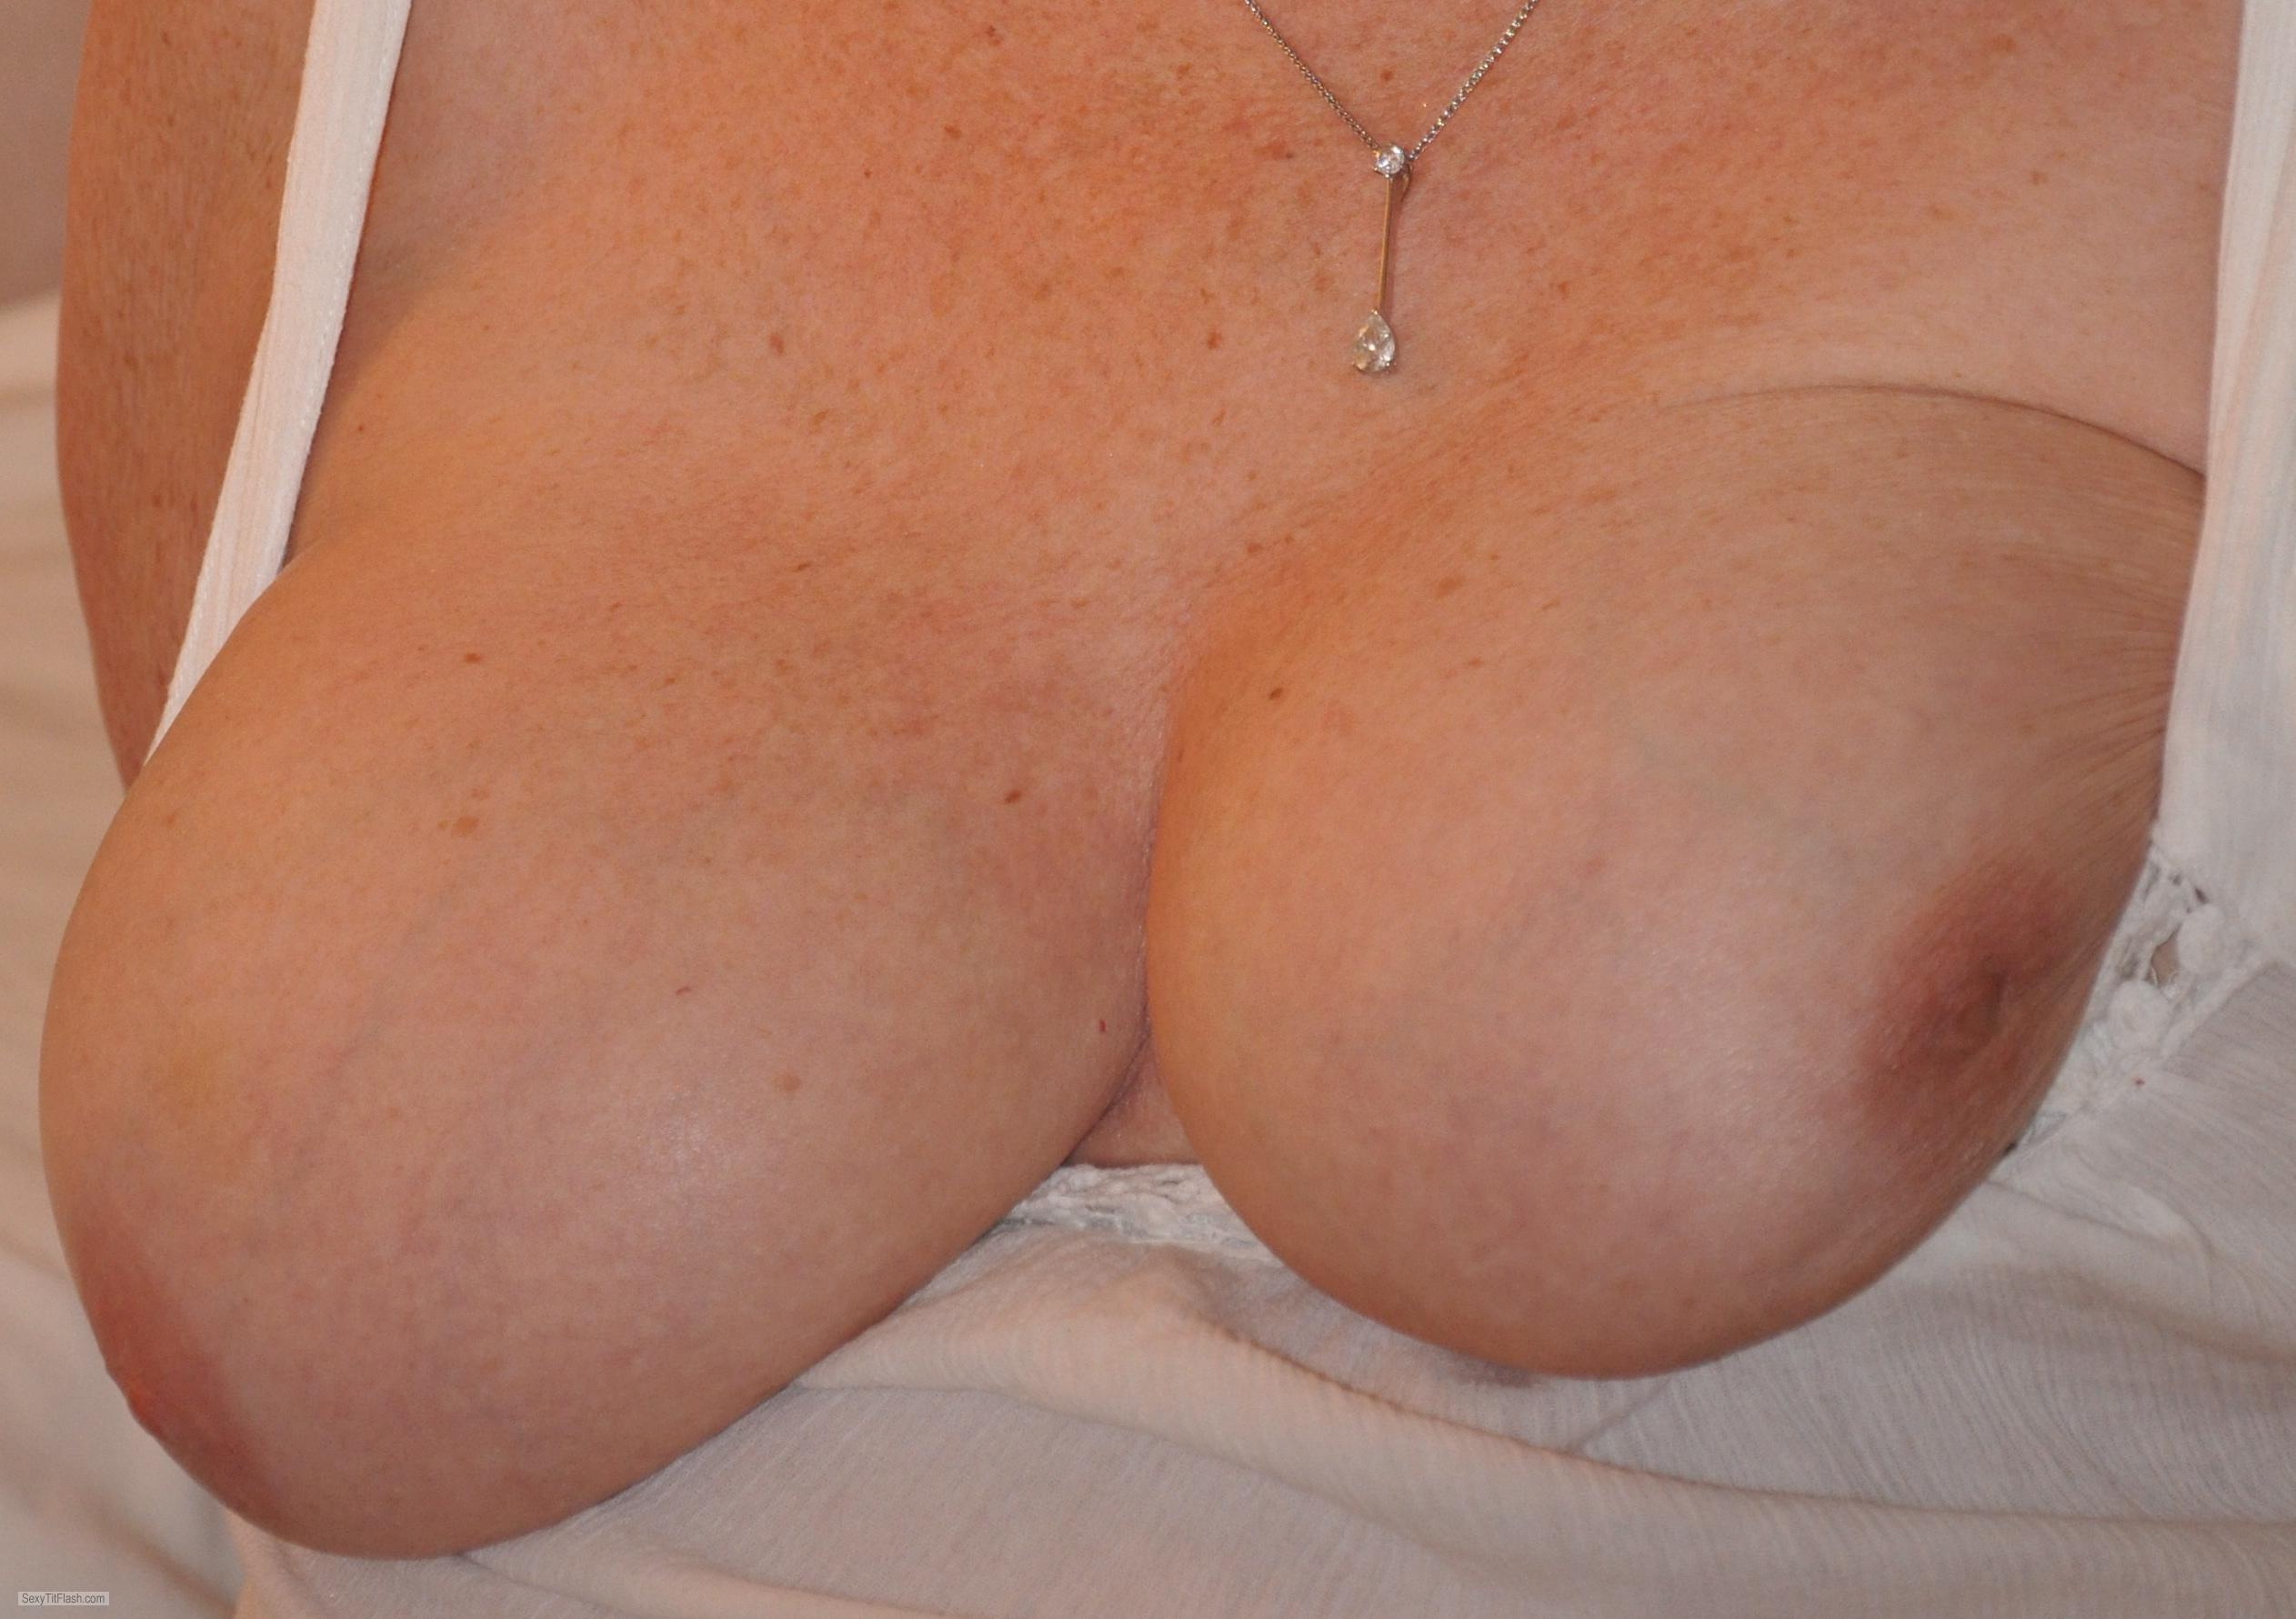 Tit Flash: My Friend's Big Tits - Sexy M from United Kingdom